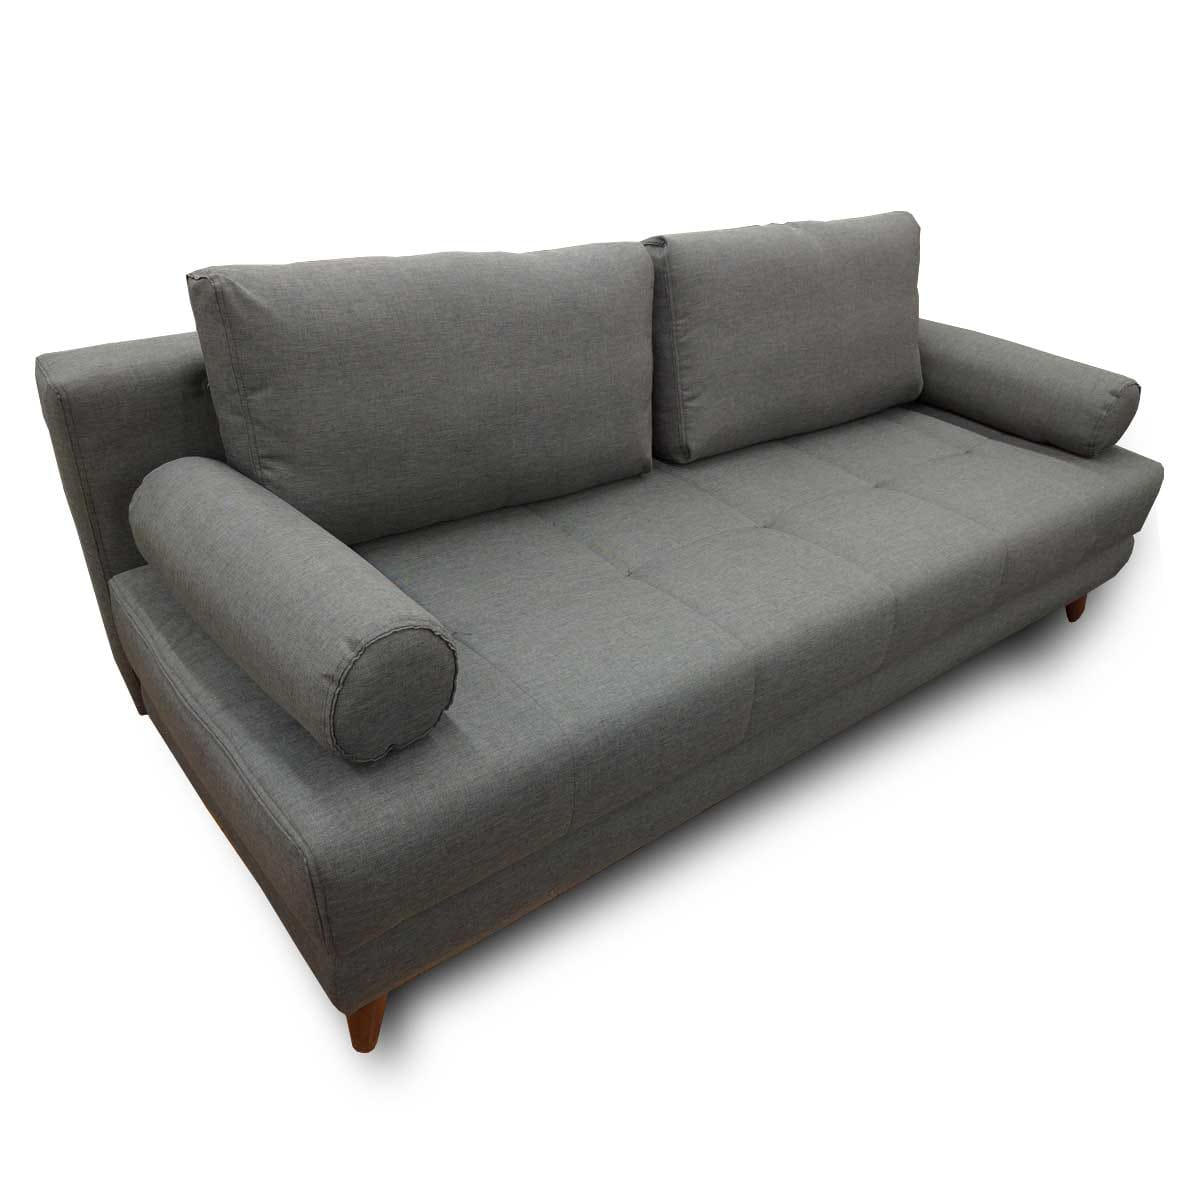 Stella diego dark gray convertible sofa bed queen sleeper for Sofa bed name